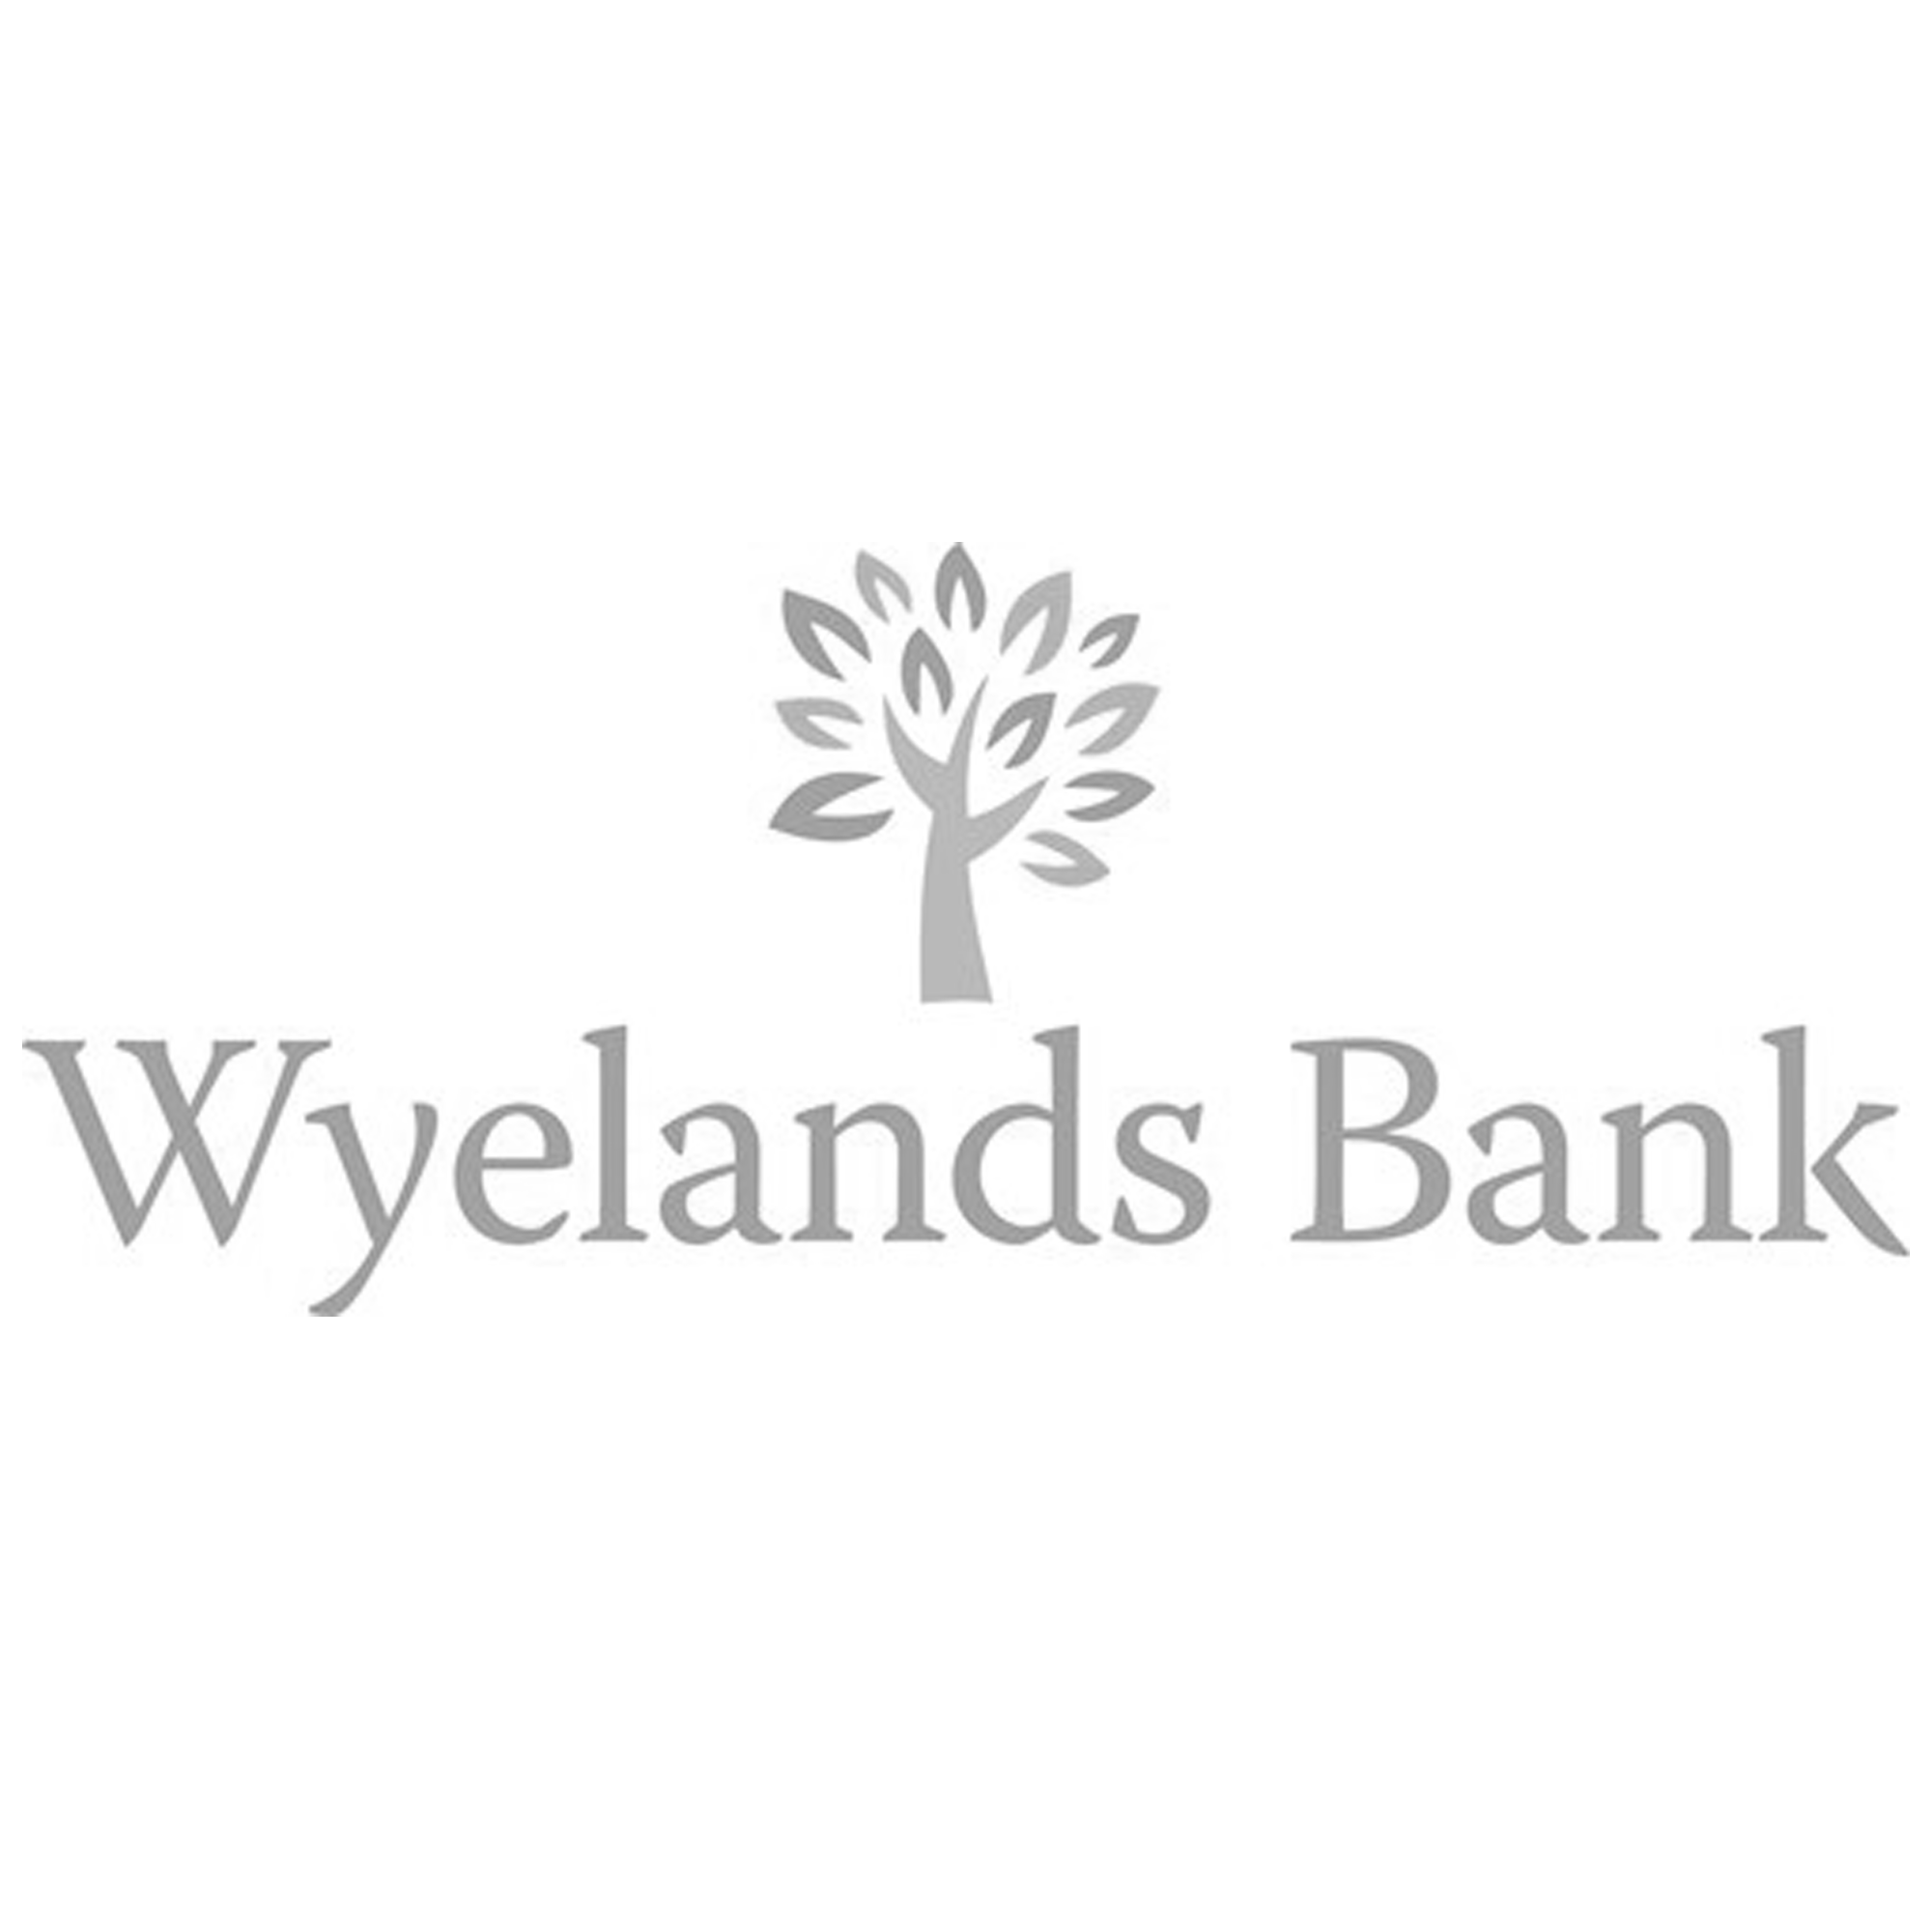 wyelandsbank logo black and white.png